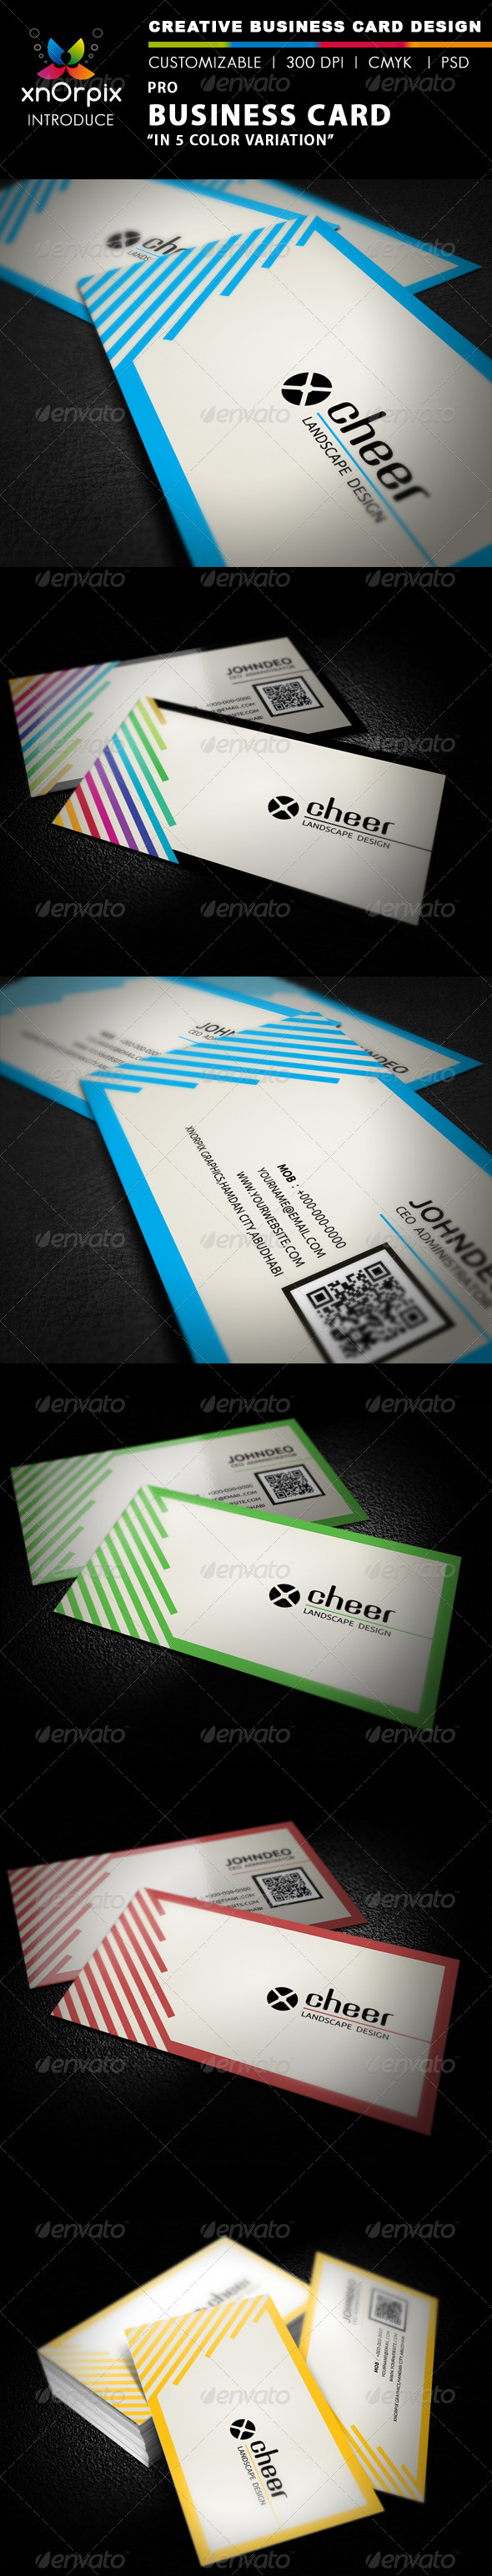 Pro Business Card - Business Cards Print Templates